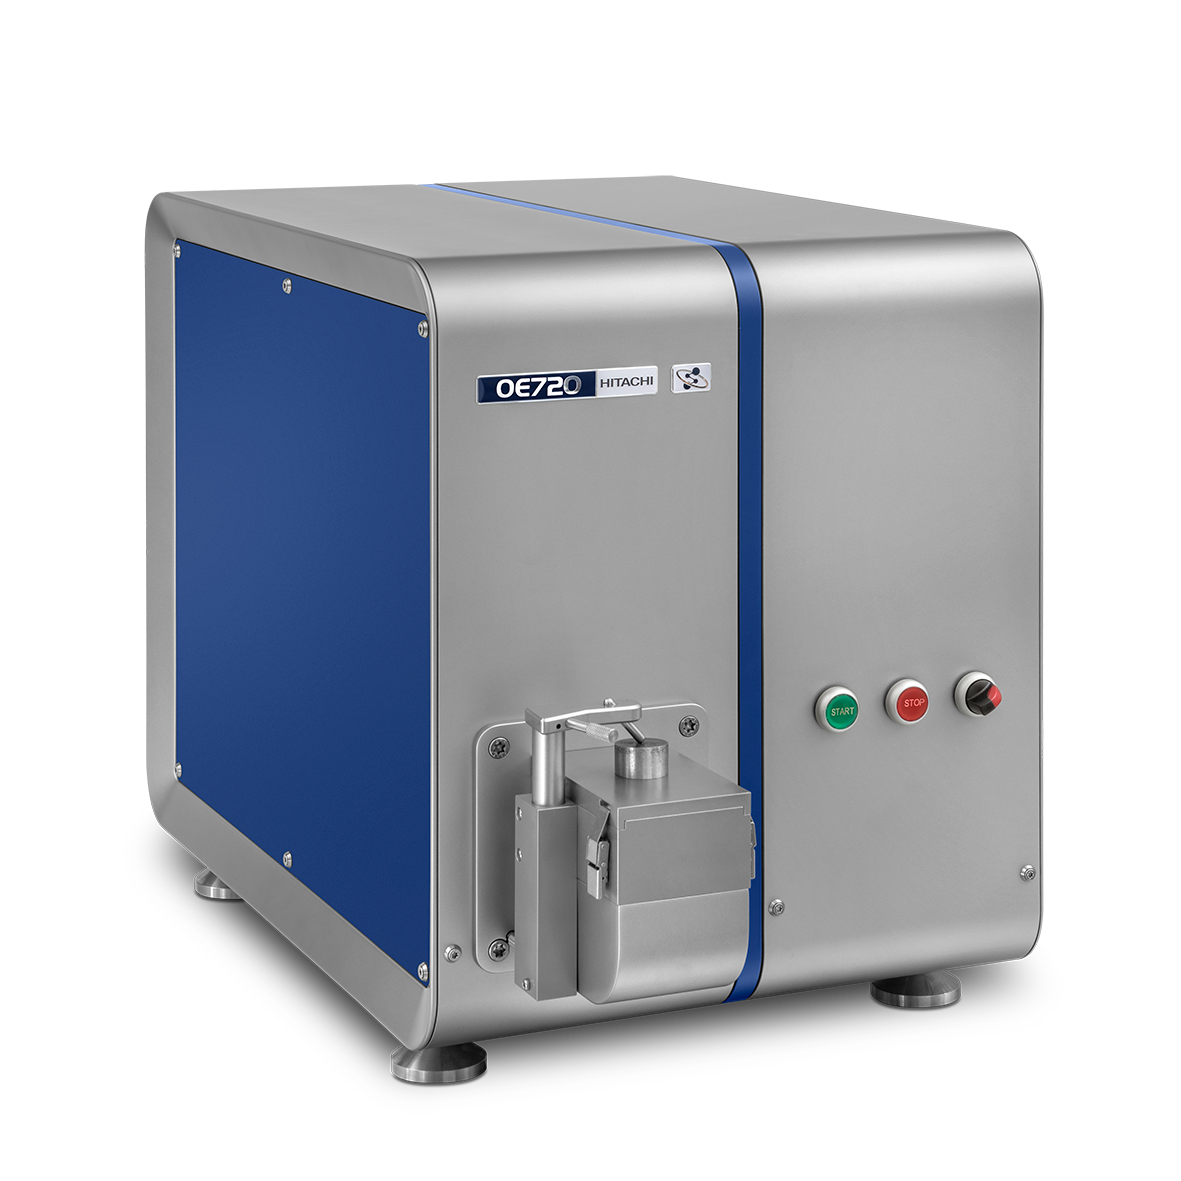 The OE720 Metals Analyzer from Hitachi